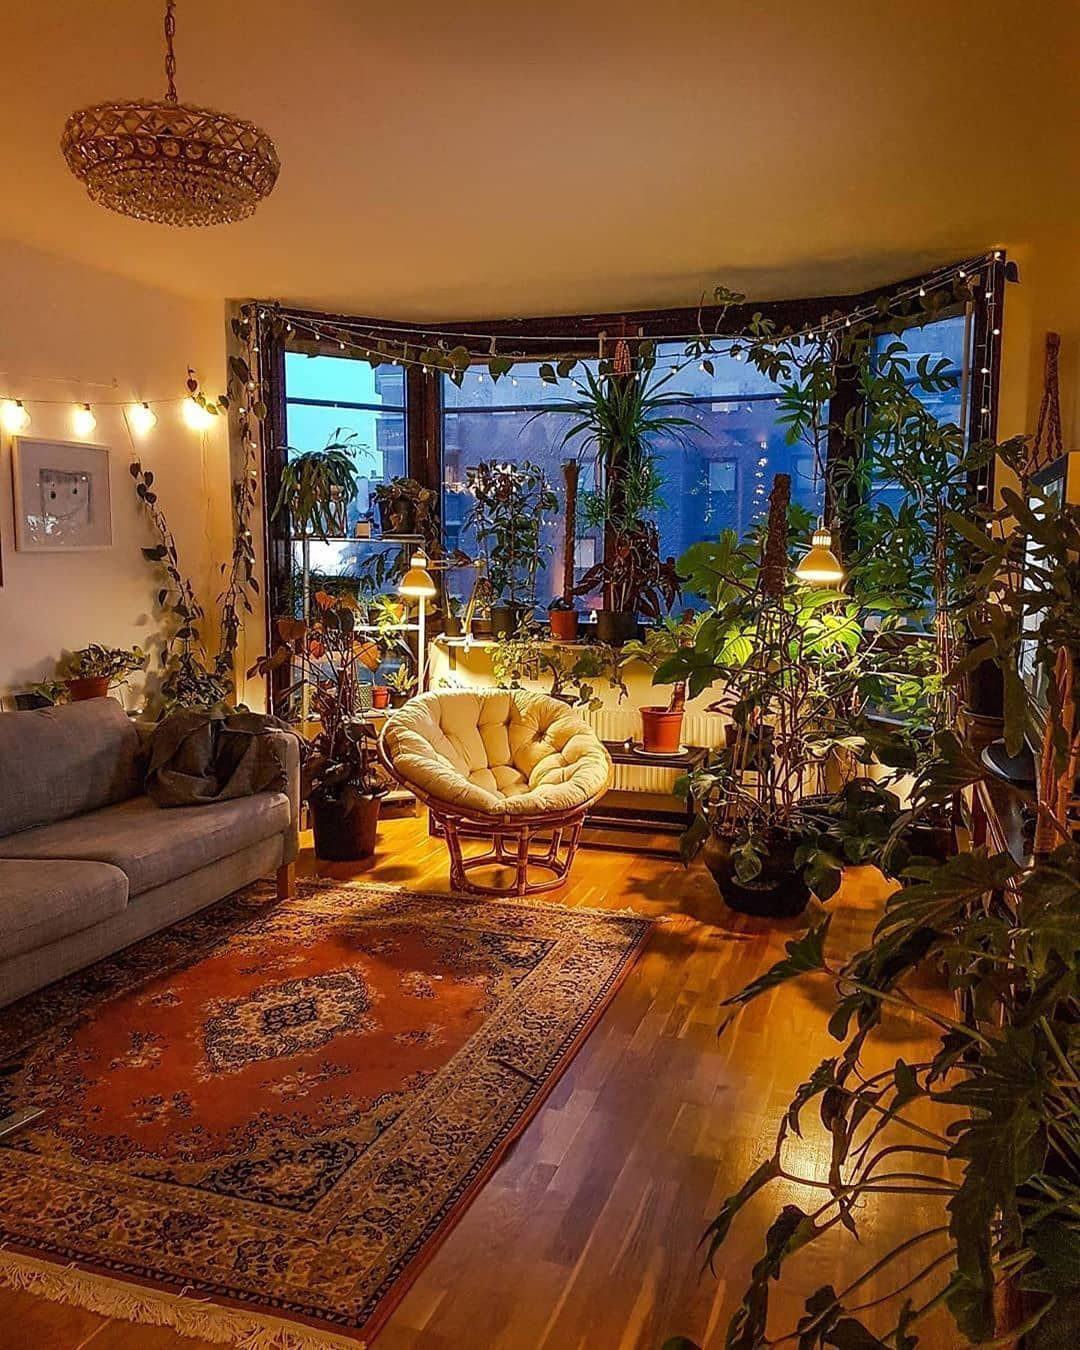 Home Decor Interior Designs On Instagram This Is A Very Cozy Living Room What Do You Think About All T In 2020 House Plants Decor Plant Decor Indoor Plant Decor